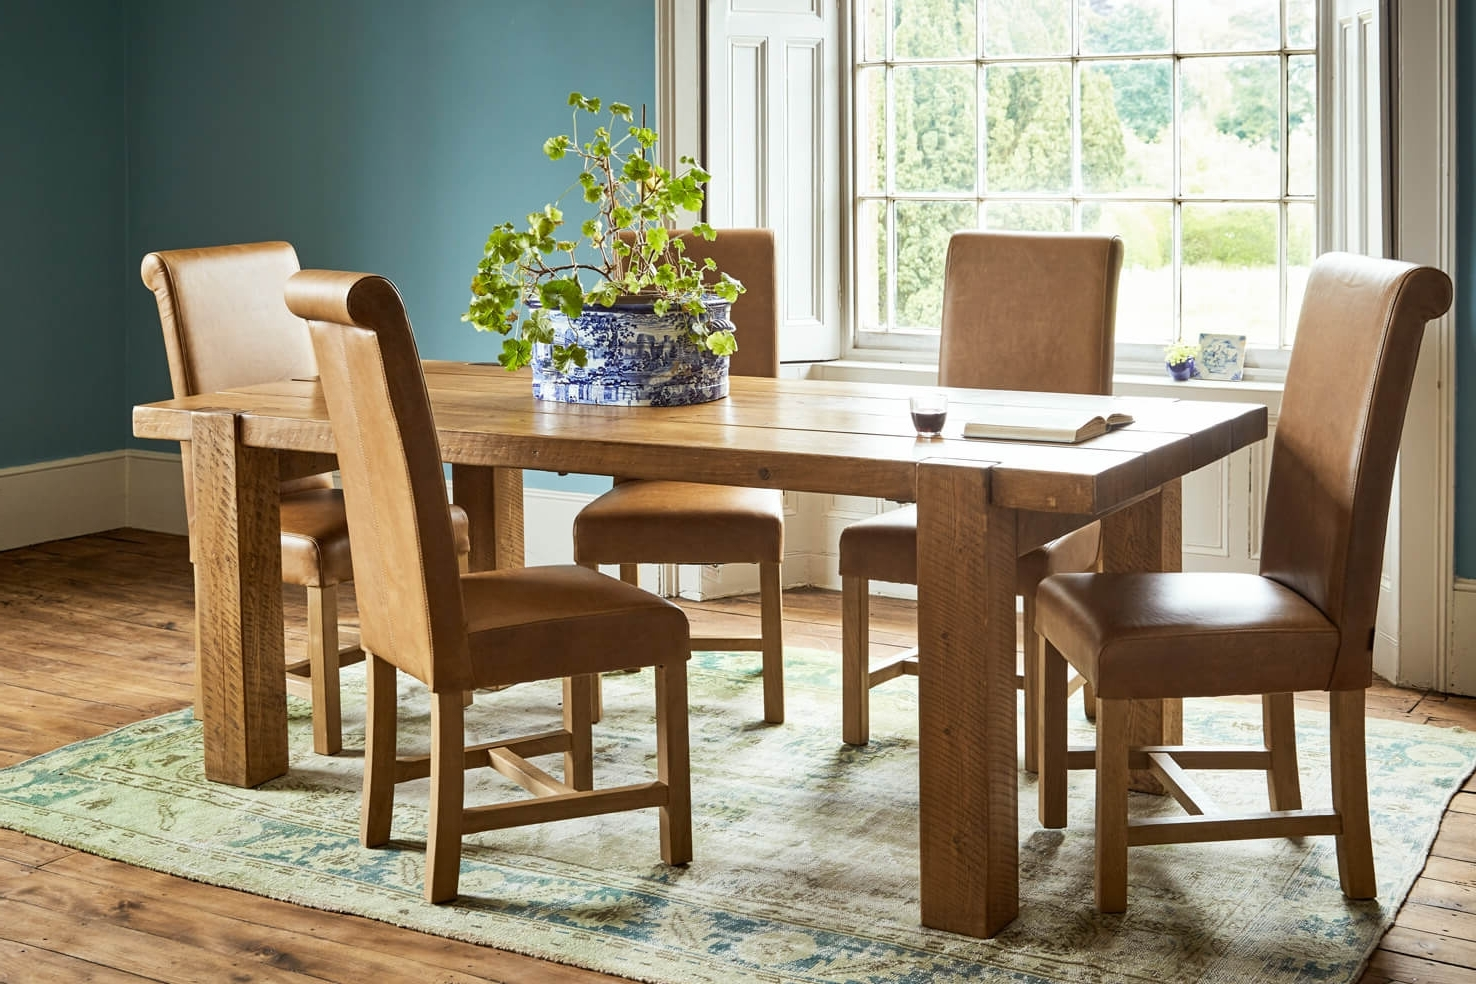 10 Seater Dining Tables (Gallery 1 of 25)